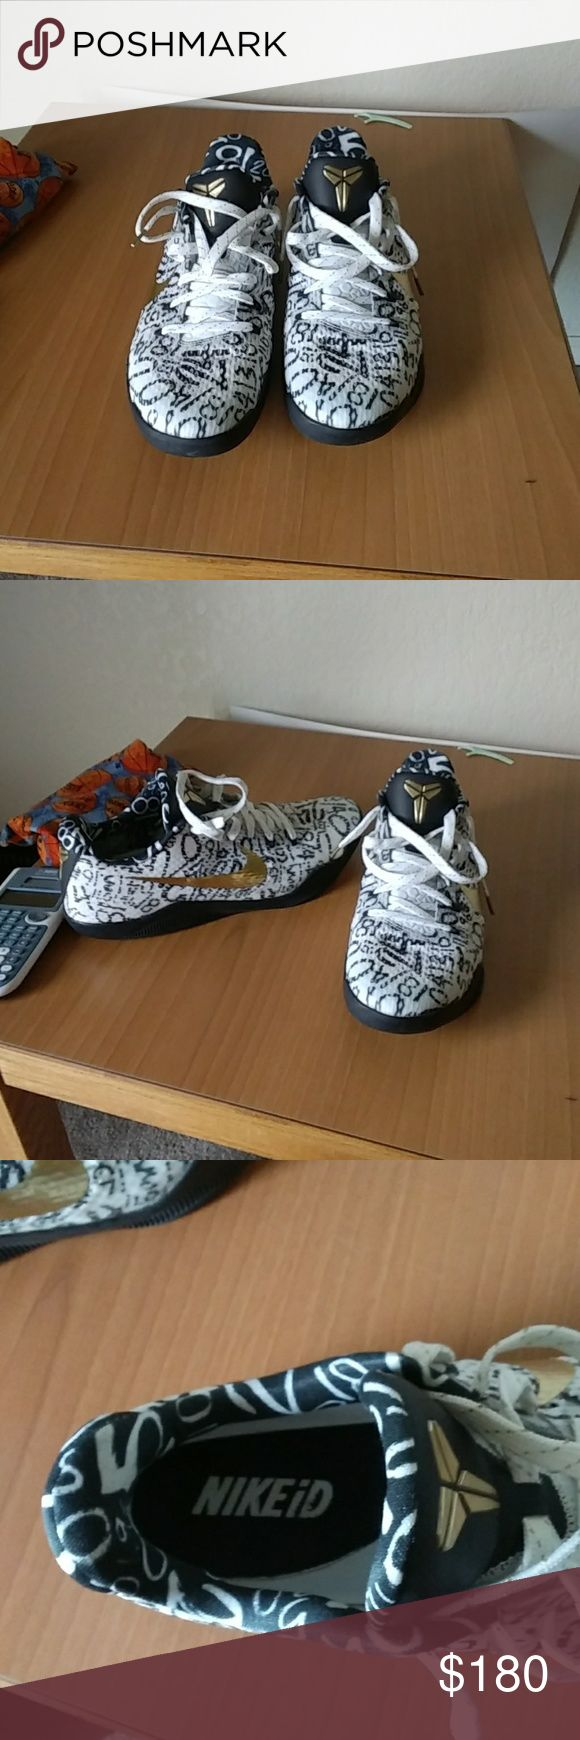 outlet store 41508 37e00 ... low price nike id mamba day kobe 11 9 10 condition worn once mamba day  nikeid